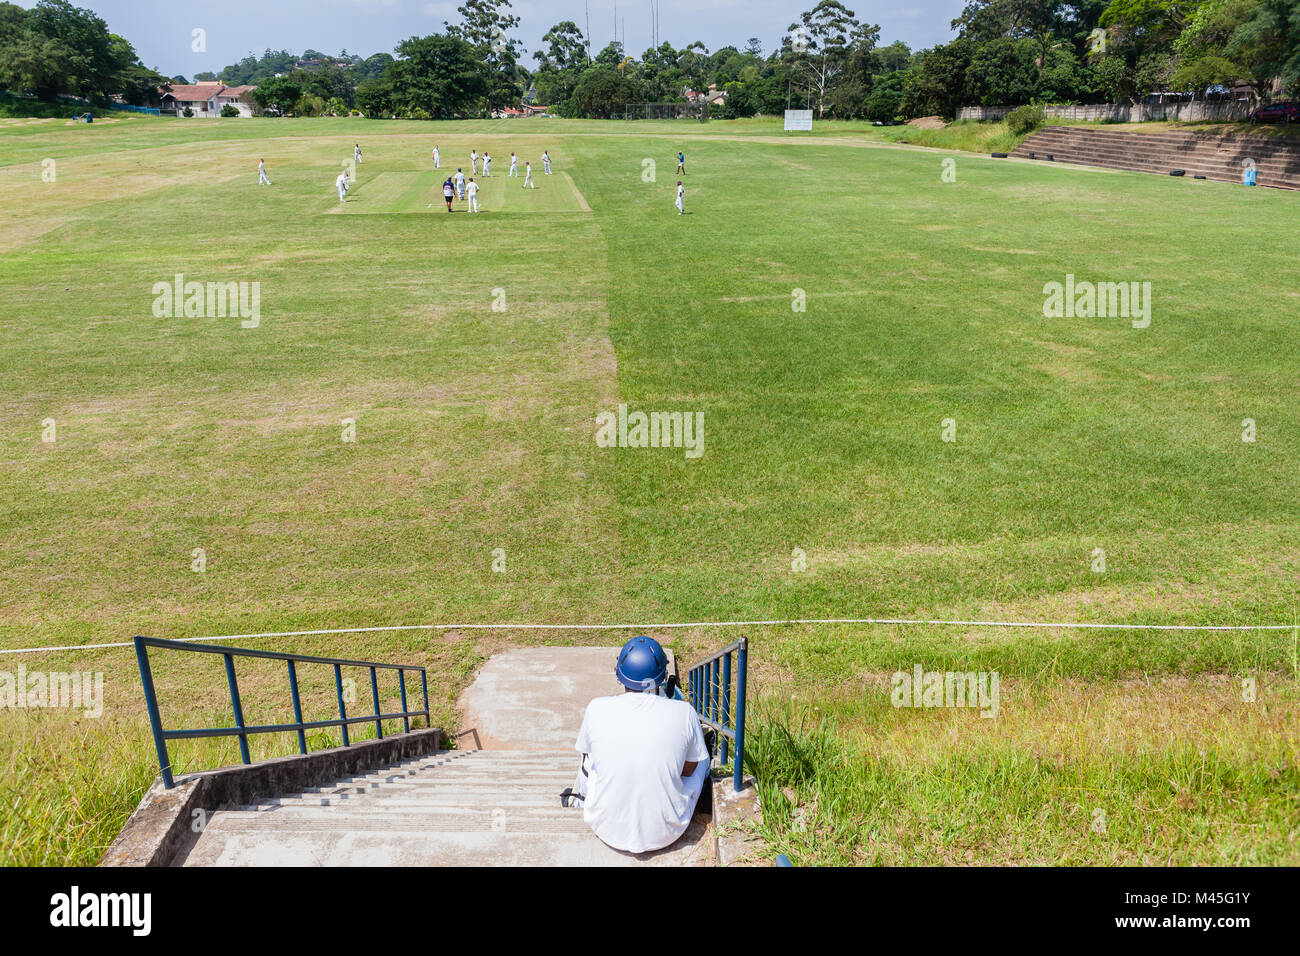 Cricket game high schools teenagers batsman waits on steps above playing field. - Stock Image